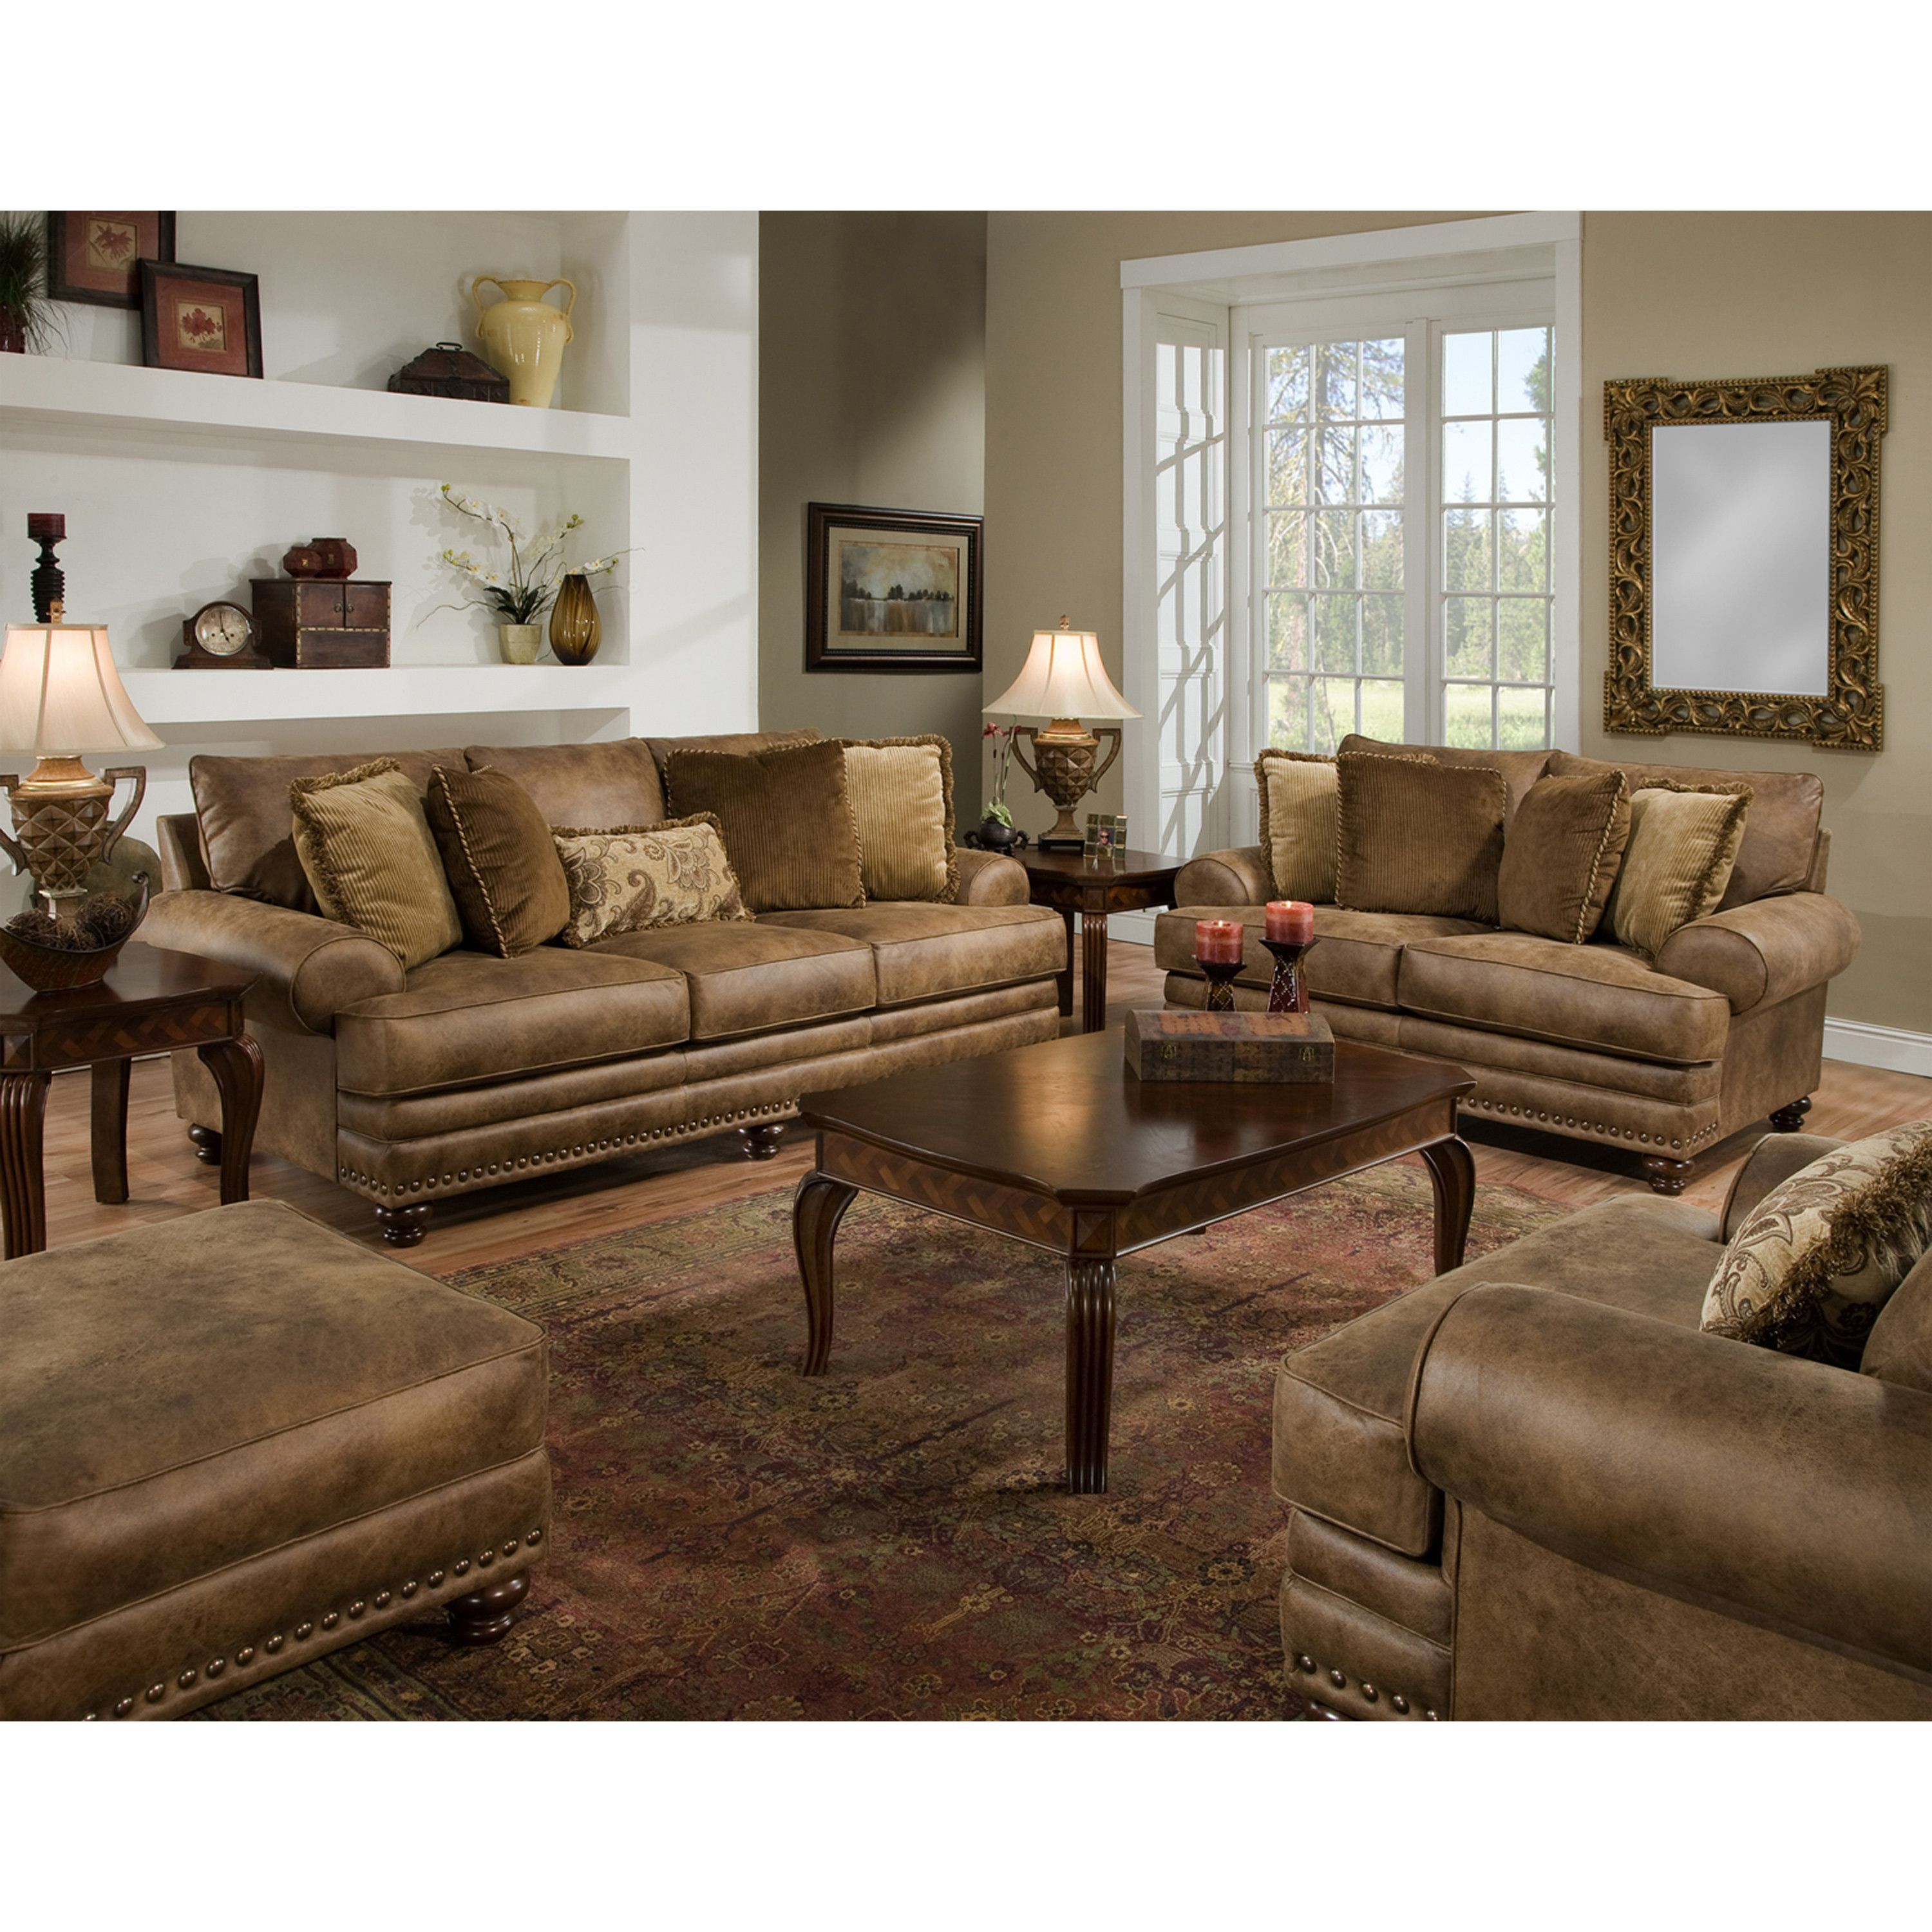 Franklin Sheridan Living Room Collection U0026 Reviews | Wayfair | Traditional  Living | Pinterest | Living Rooms, Room And Living Room Sets